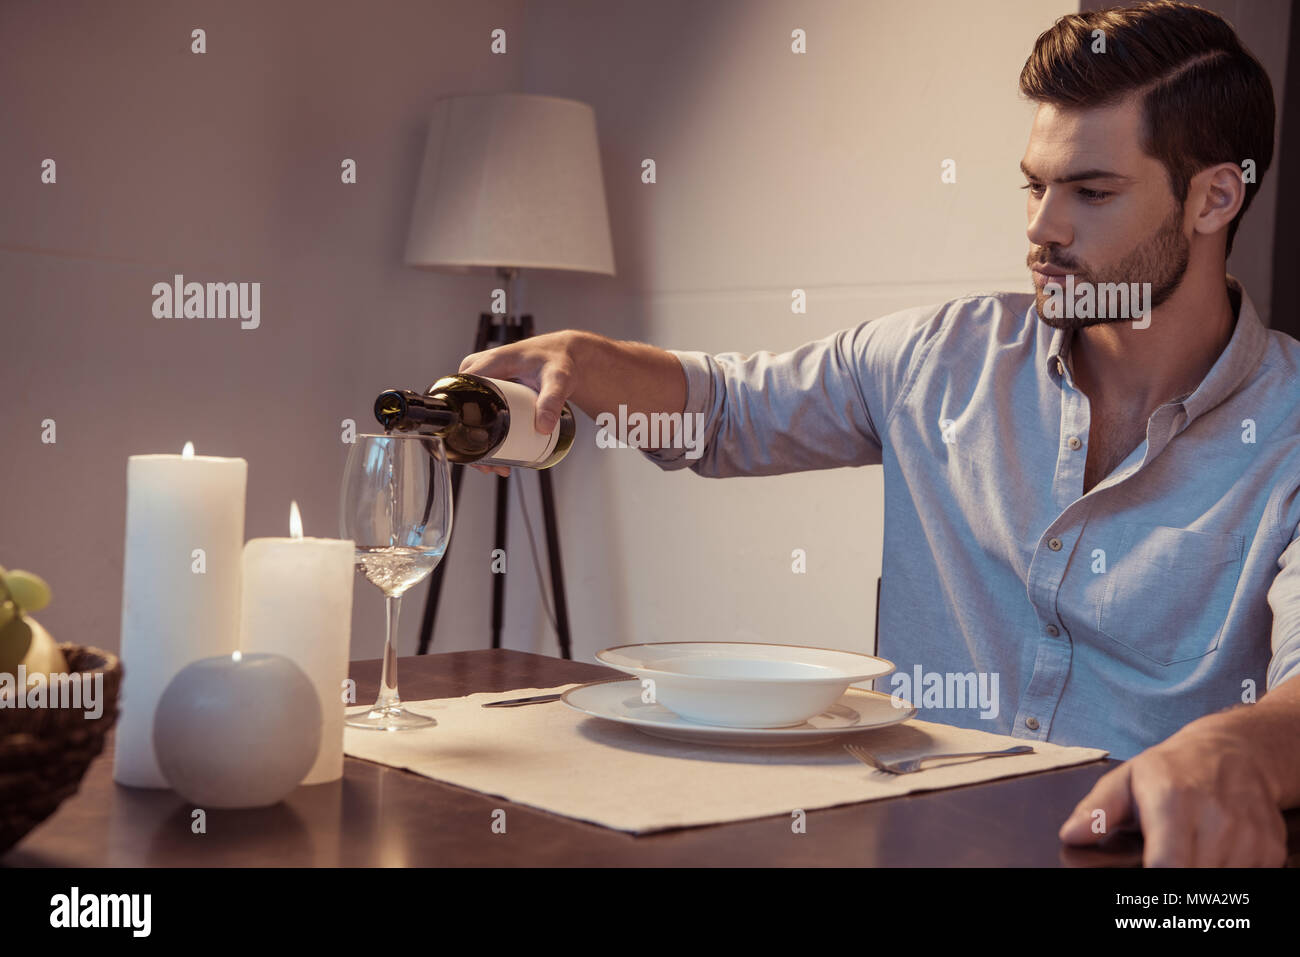 mna pouring wine in glass for romantic dinner - Stock Image